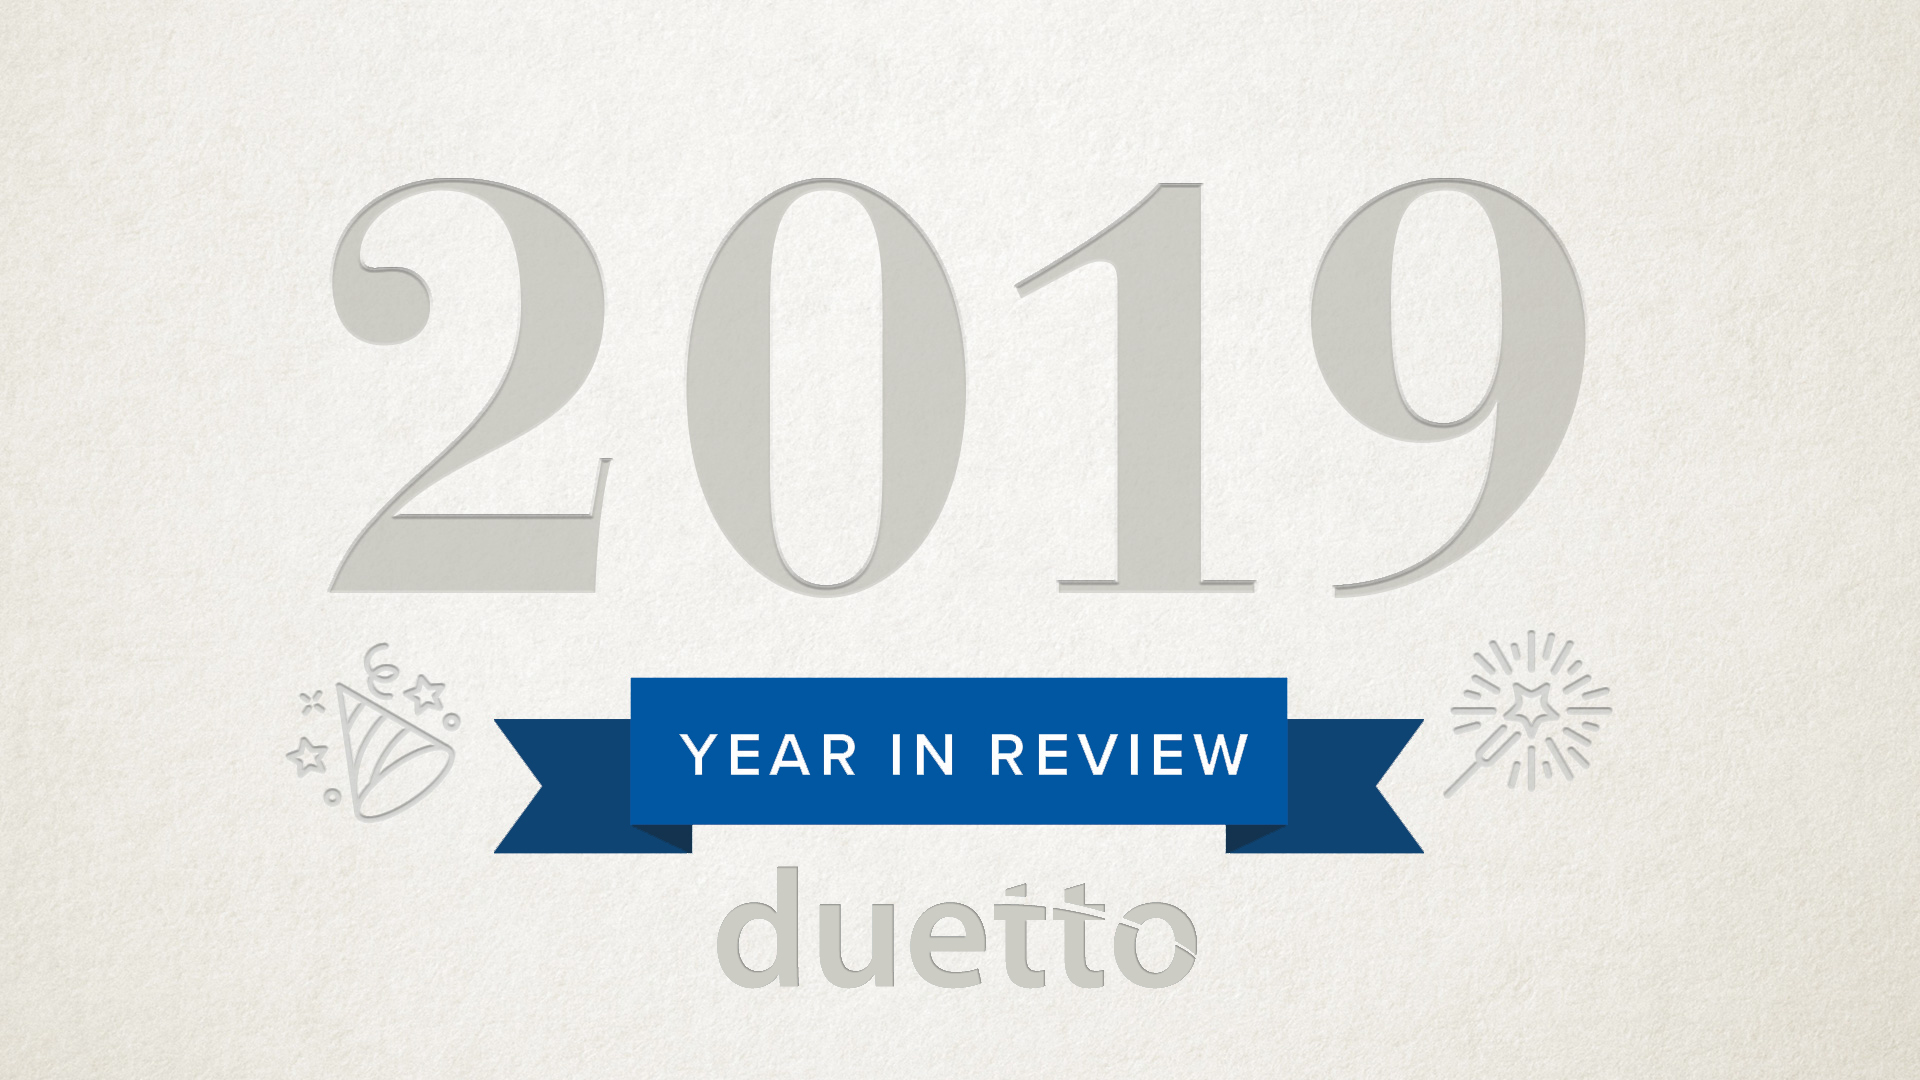 yearinreview-duetto-1